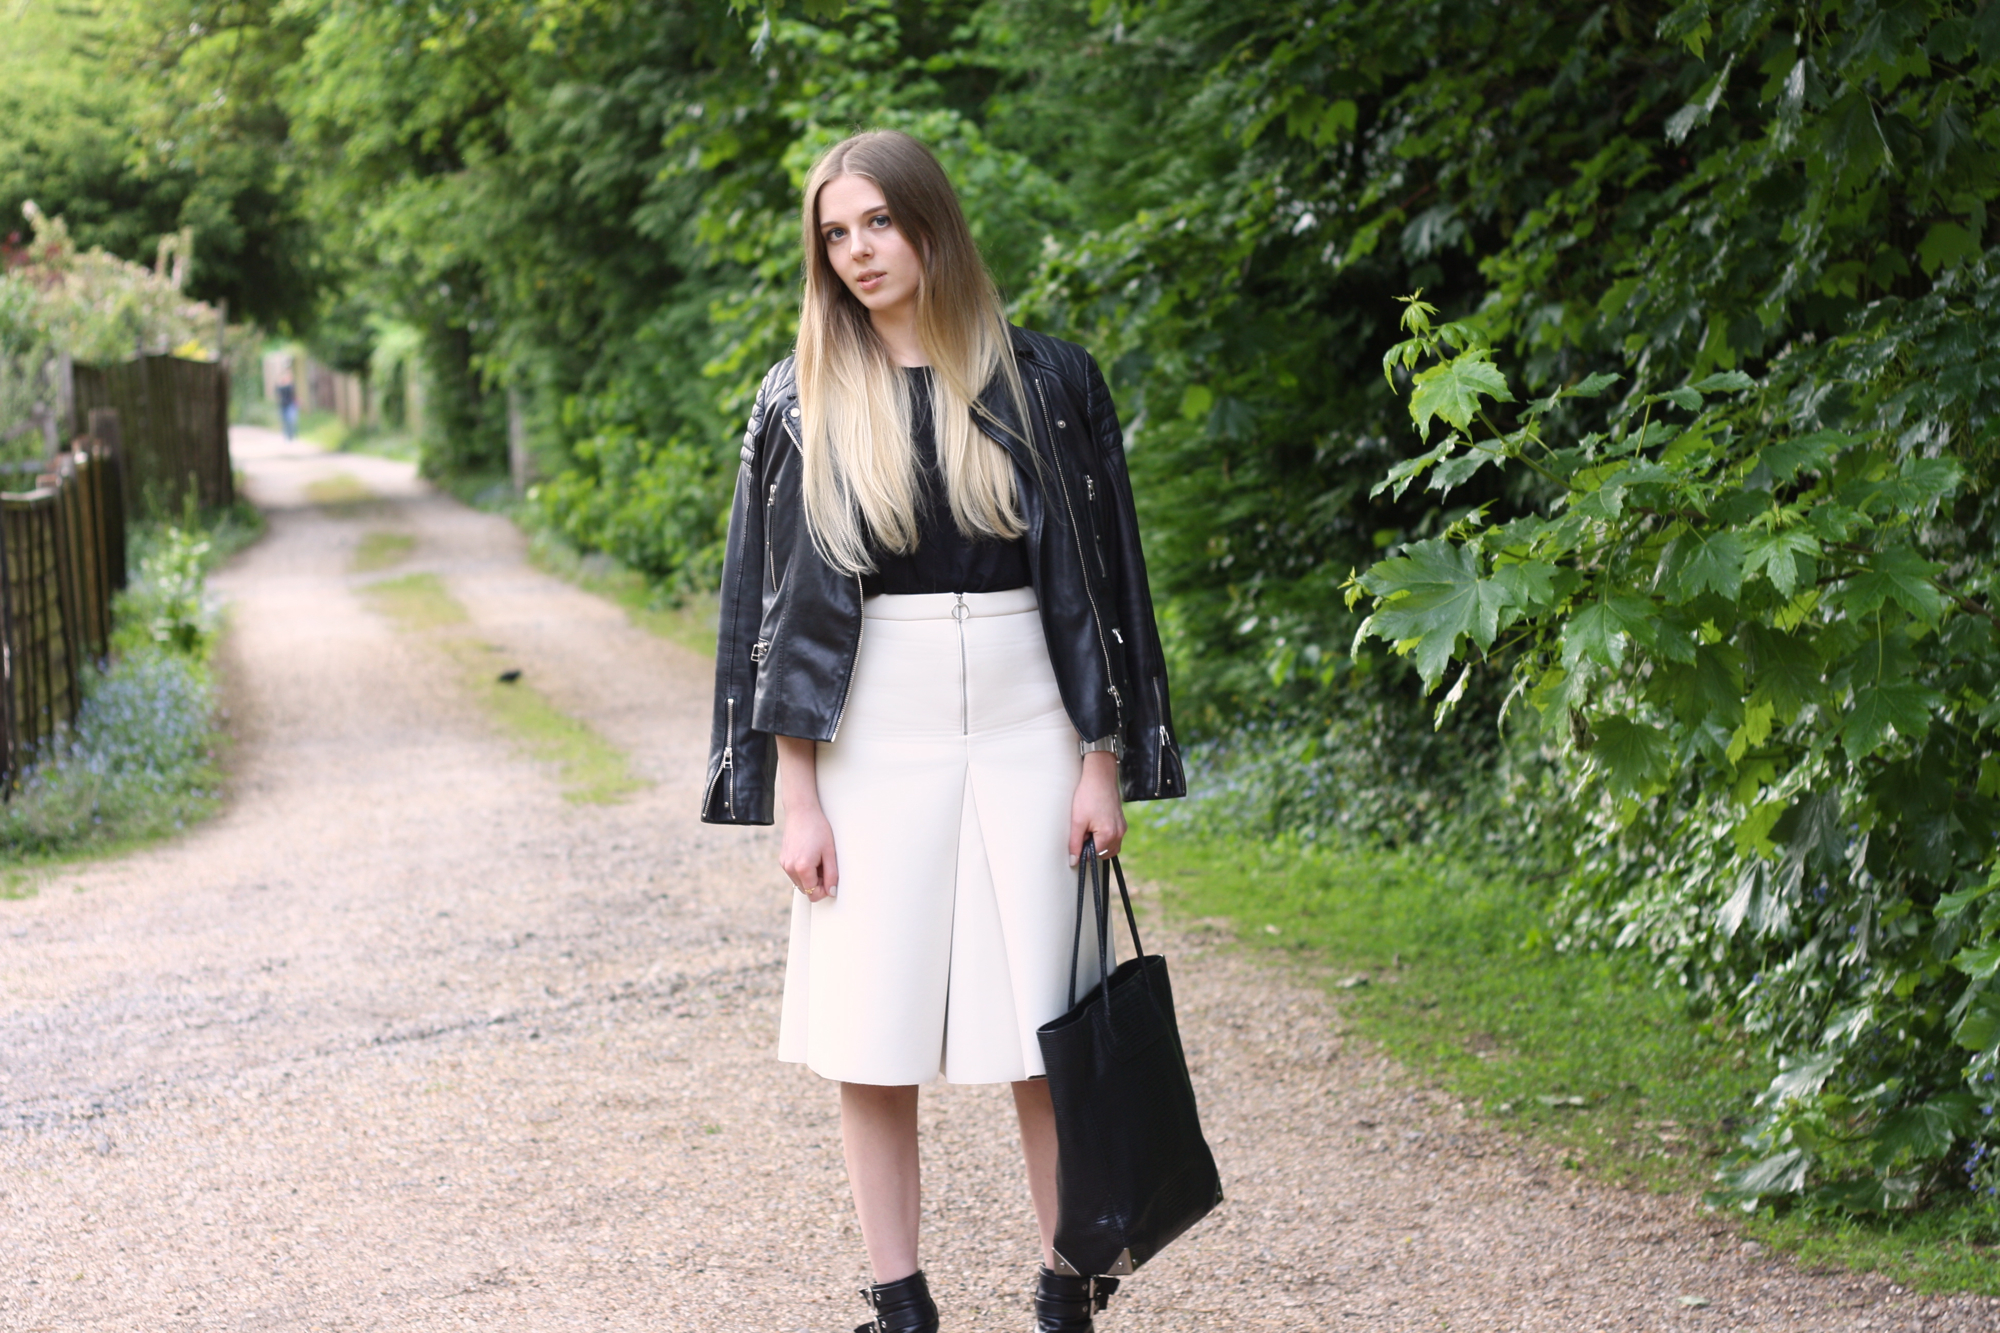 Topshop cream scuba skirt